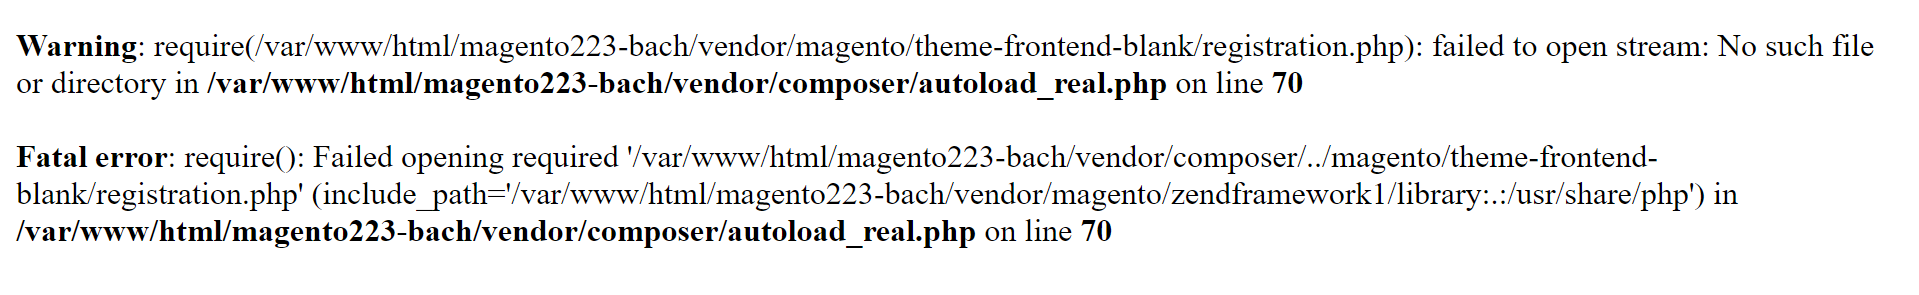 magento-2-blank-theme-download-error-log